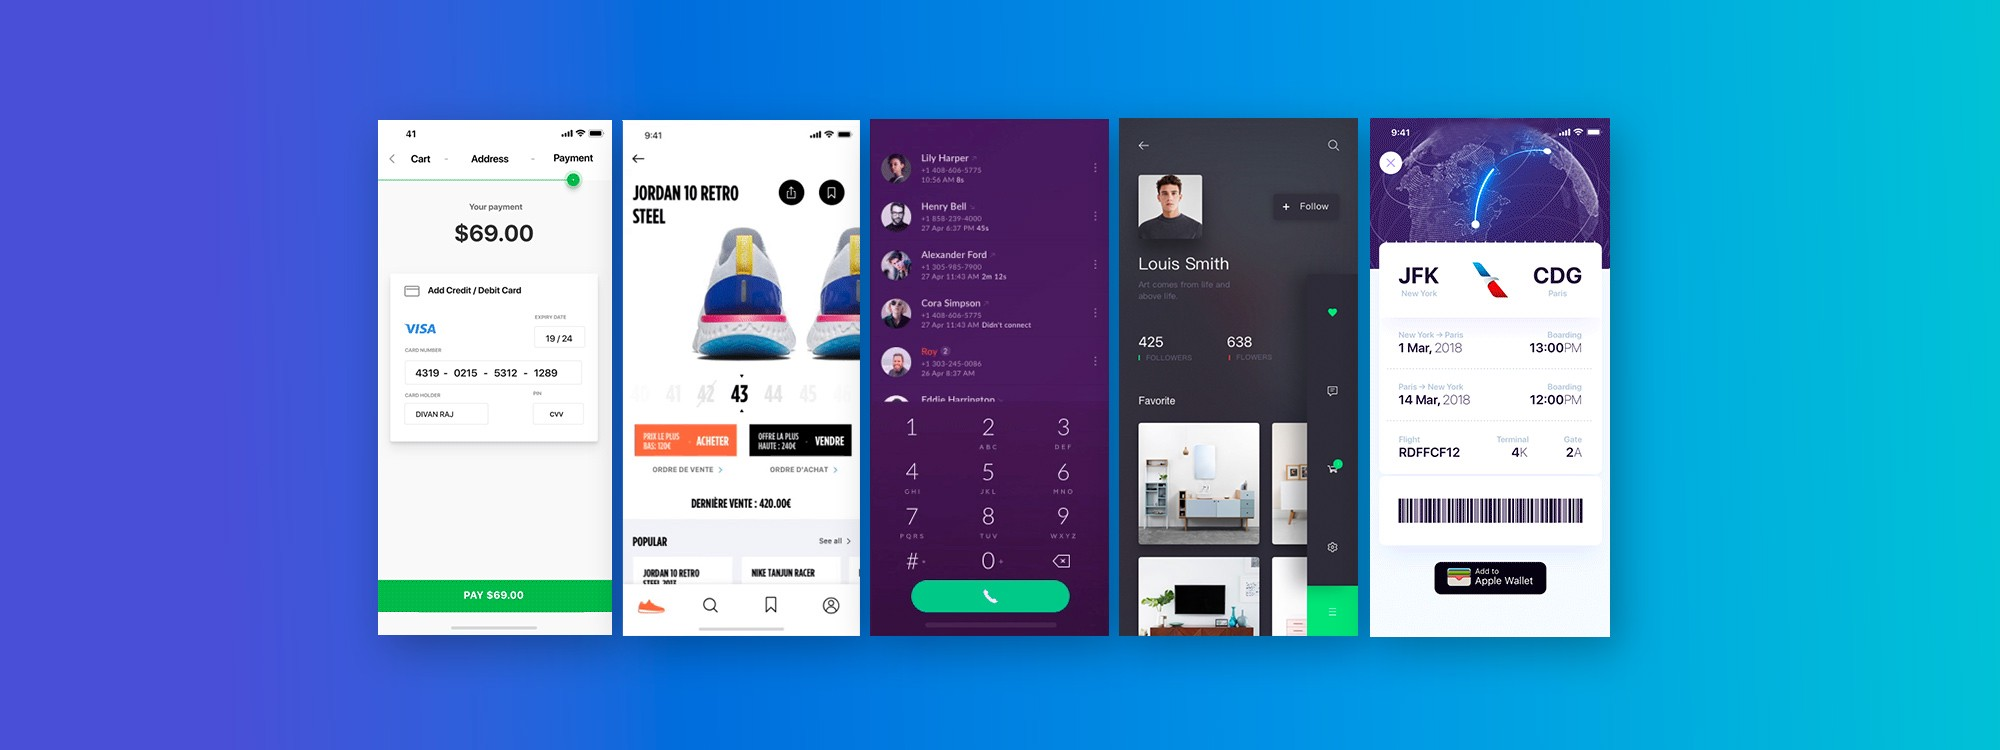 top 5 mobile interaction designs of july 2018 |proto.io